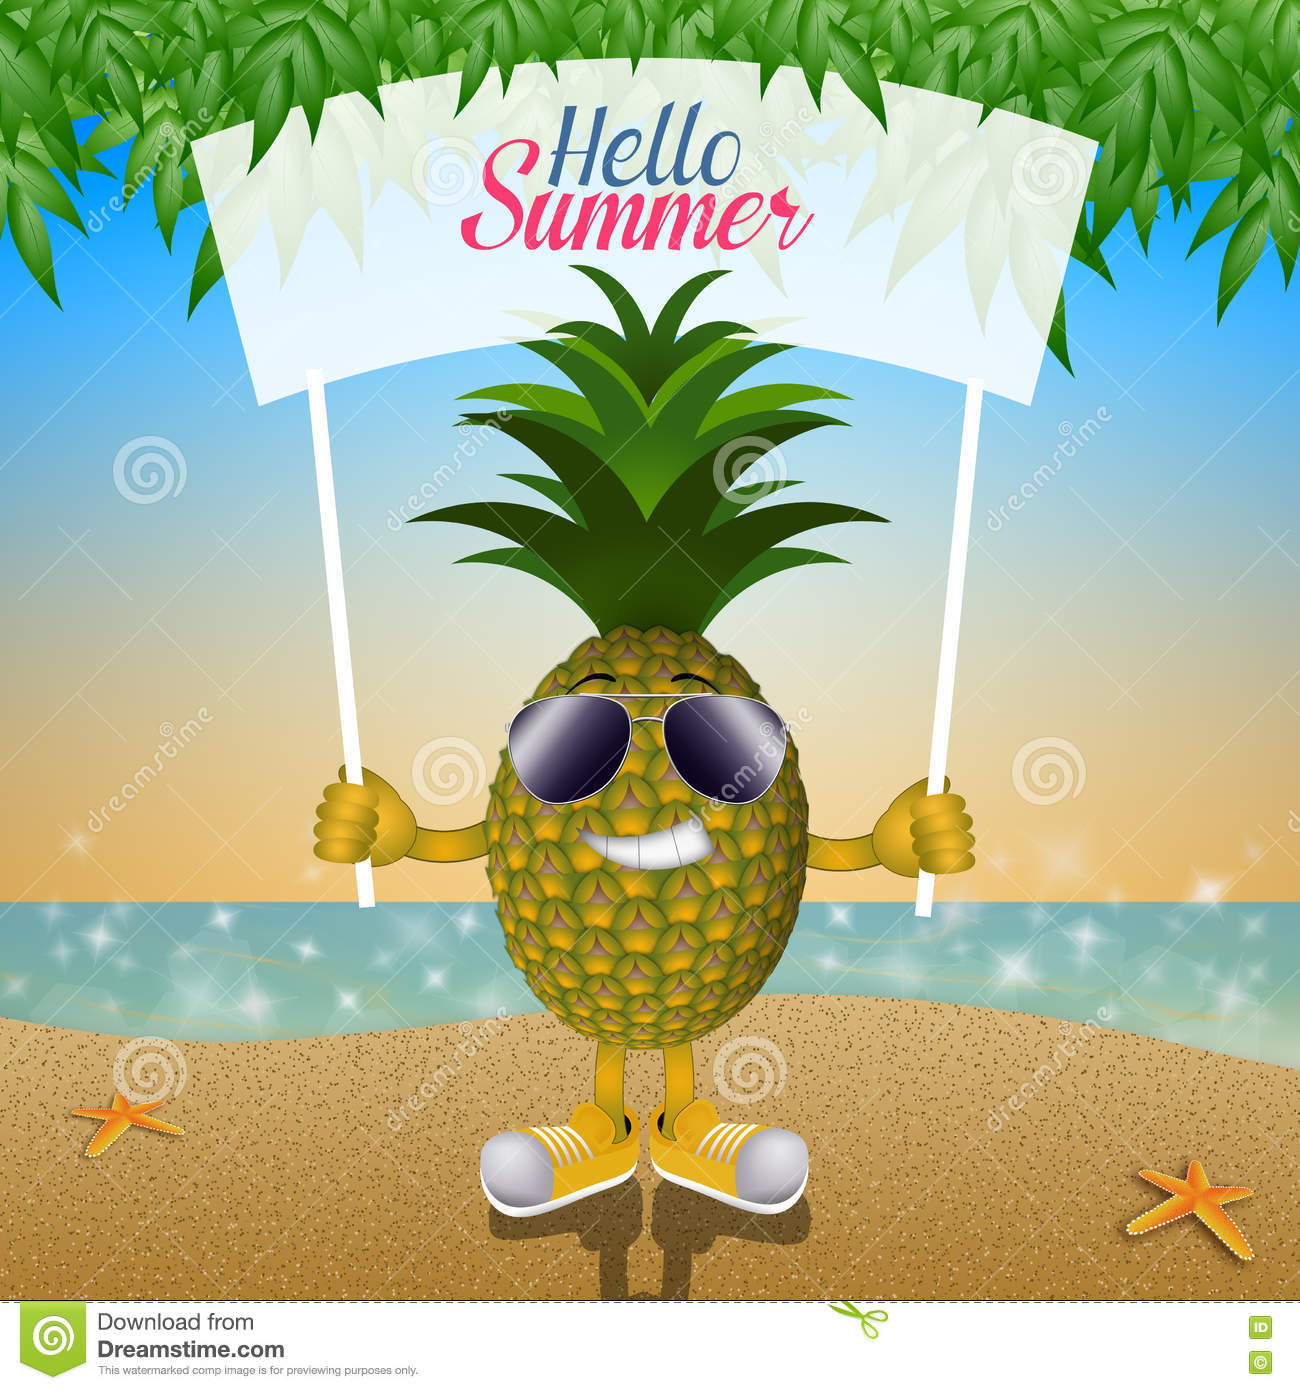 pineapple with sunglasses clipart. funny pineapple with sunglasses on the beach stock images clipart